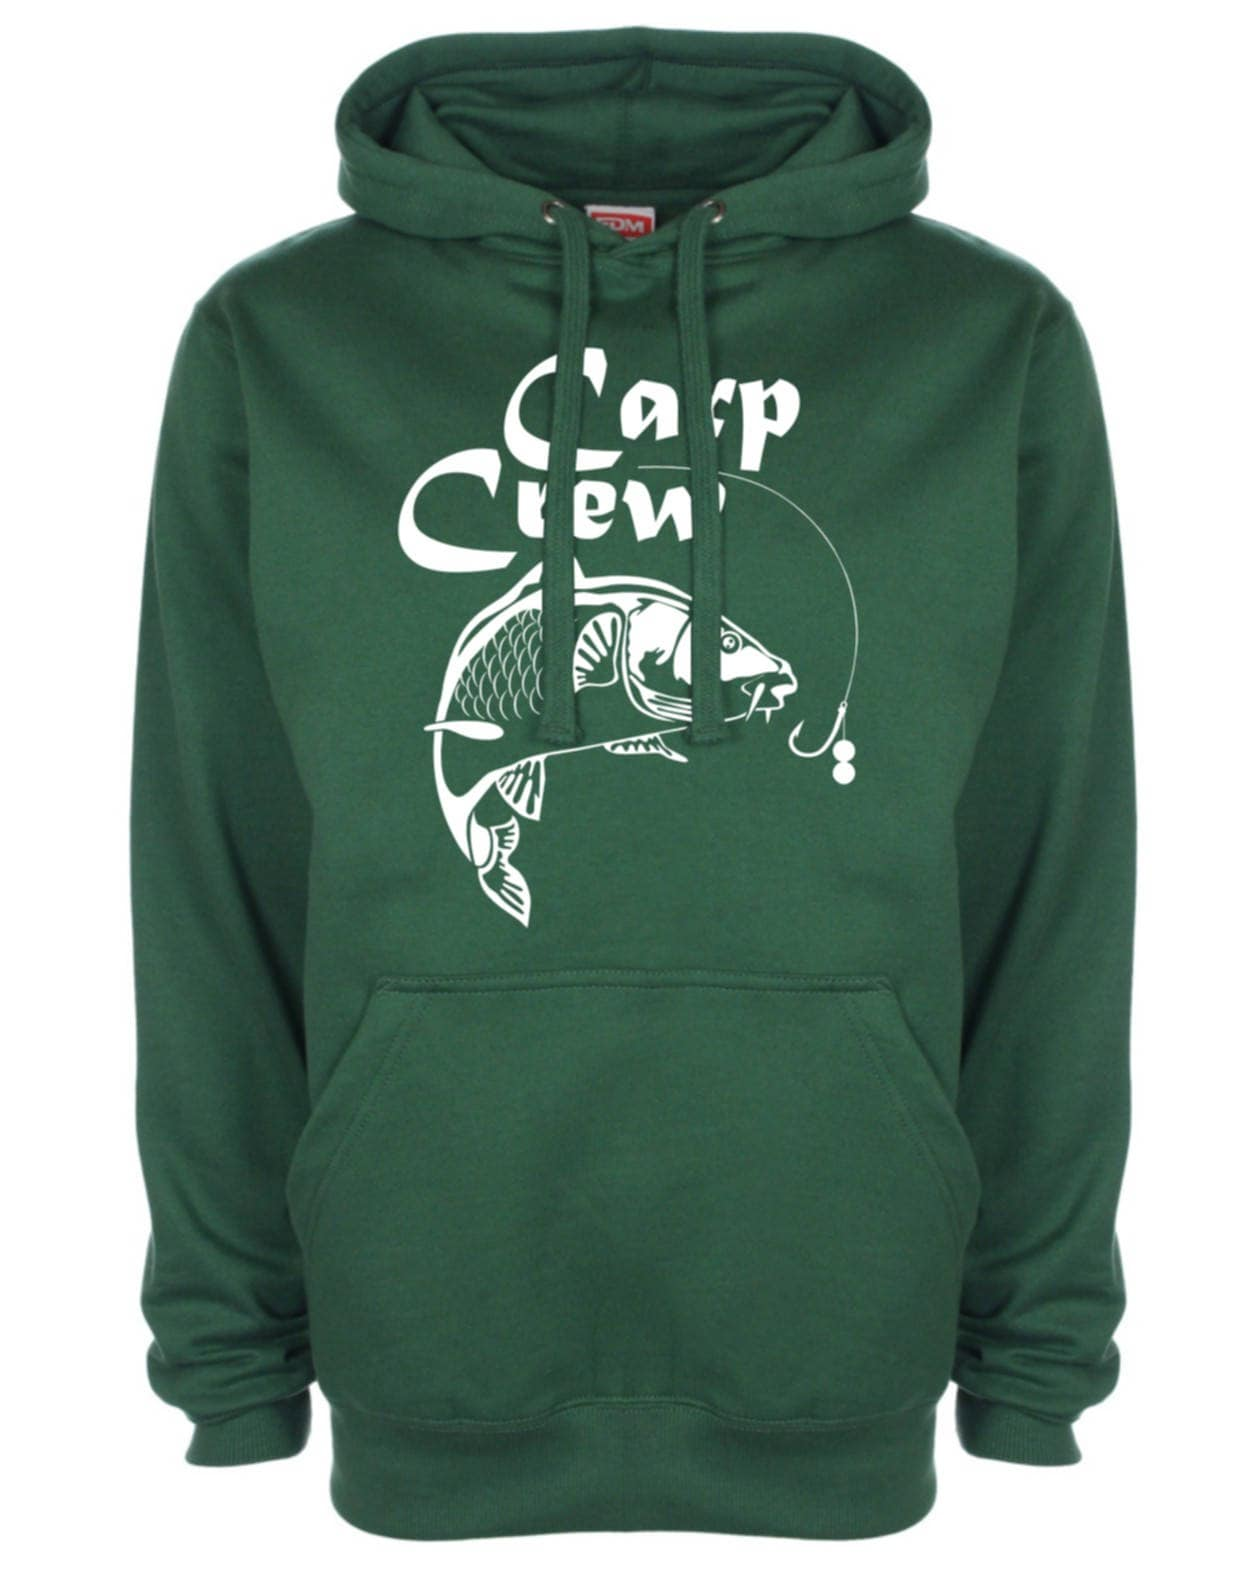 carp crew mens hoodie retro fisherman fishing gifts christmas gifts gifts for him gifts for her christmas new